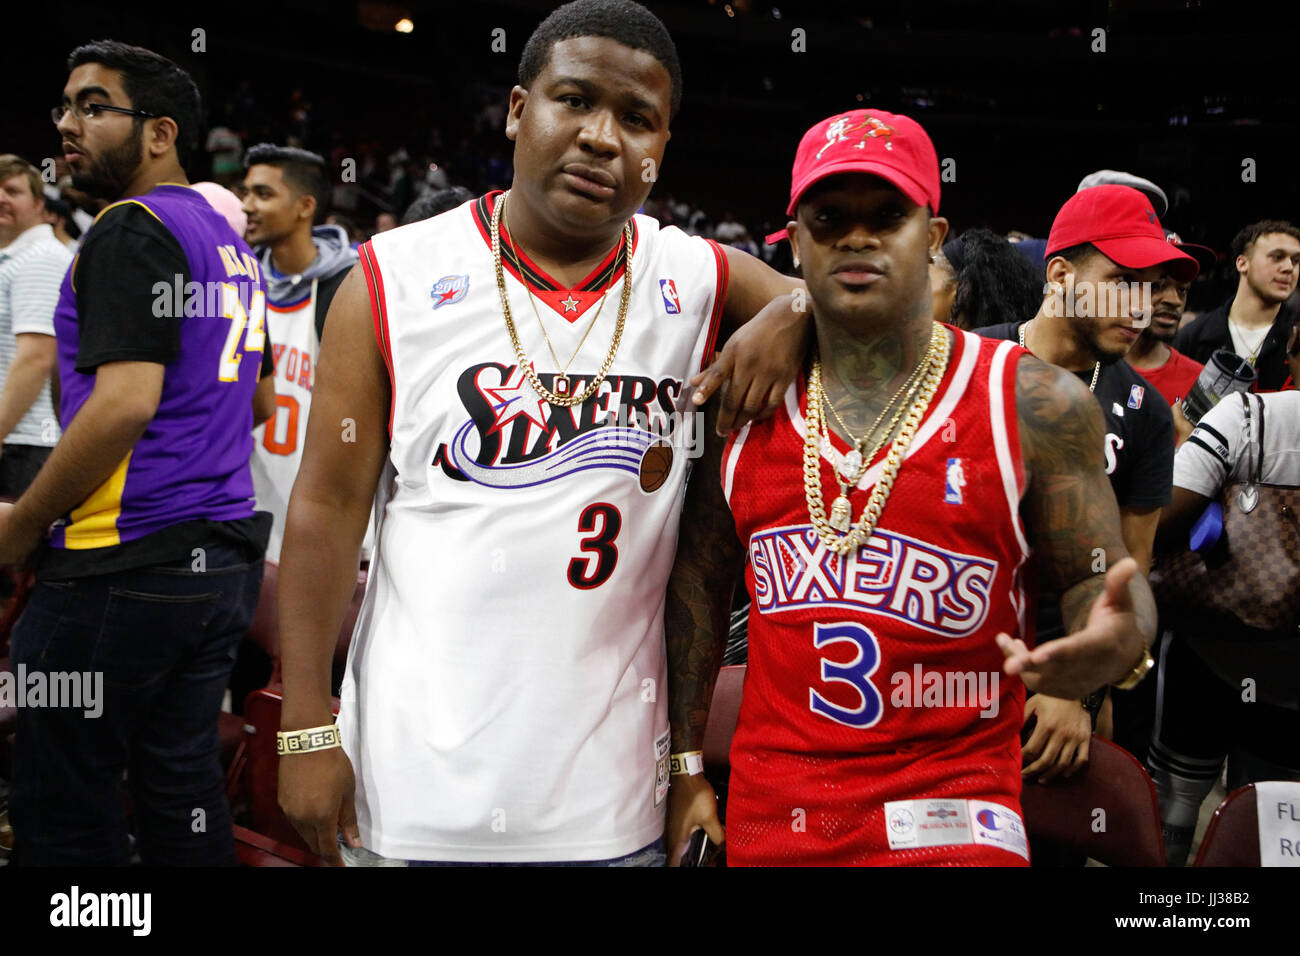 Rappers DNA Conceited attend Big 3 league Phiily,PA 7/16/17 - Stock Image